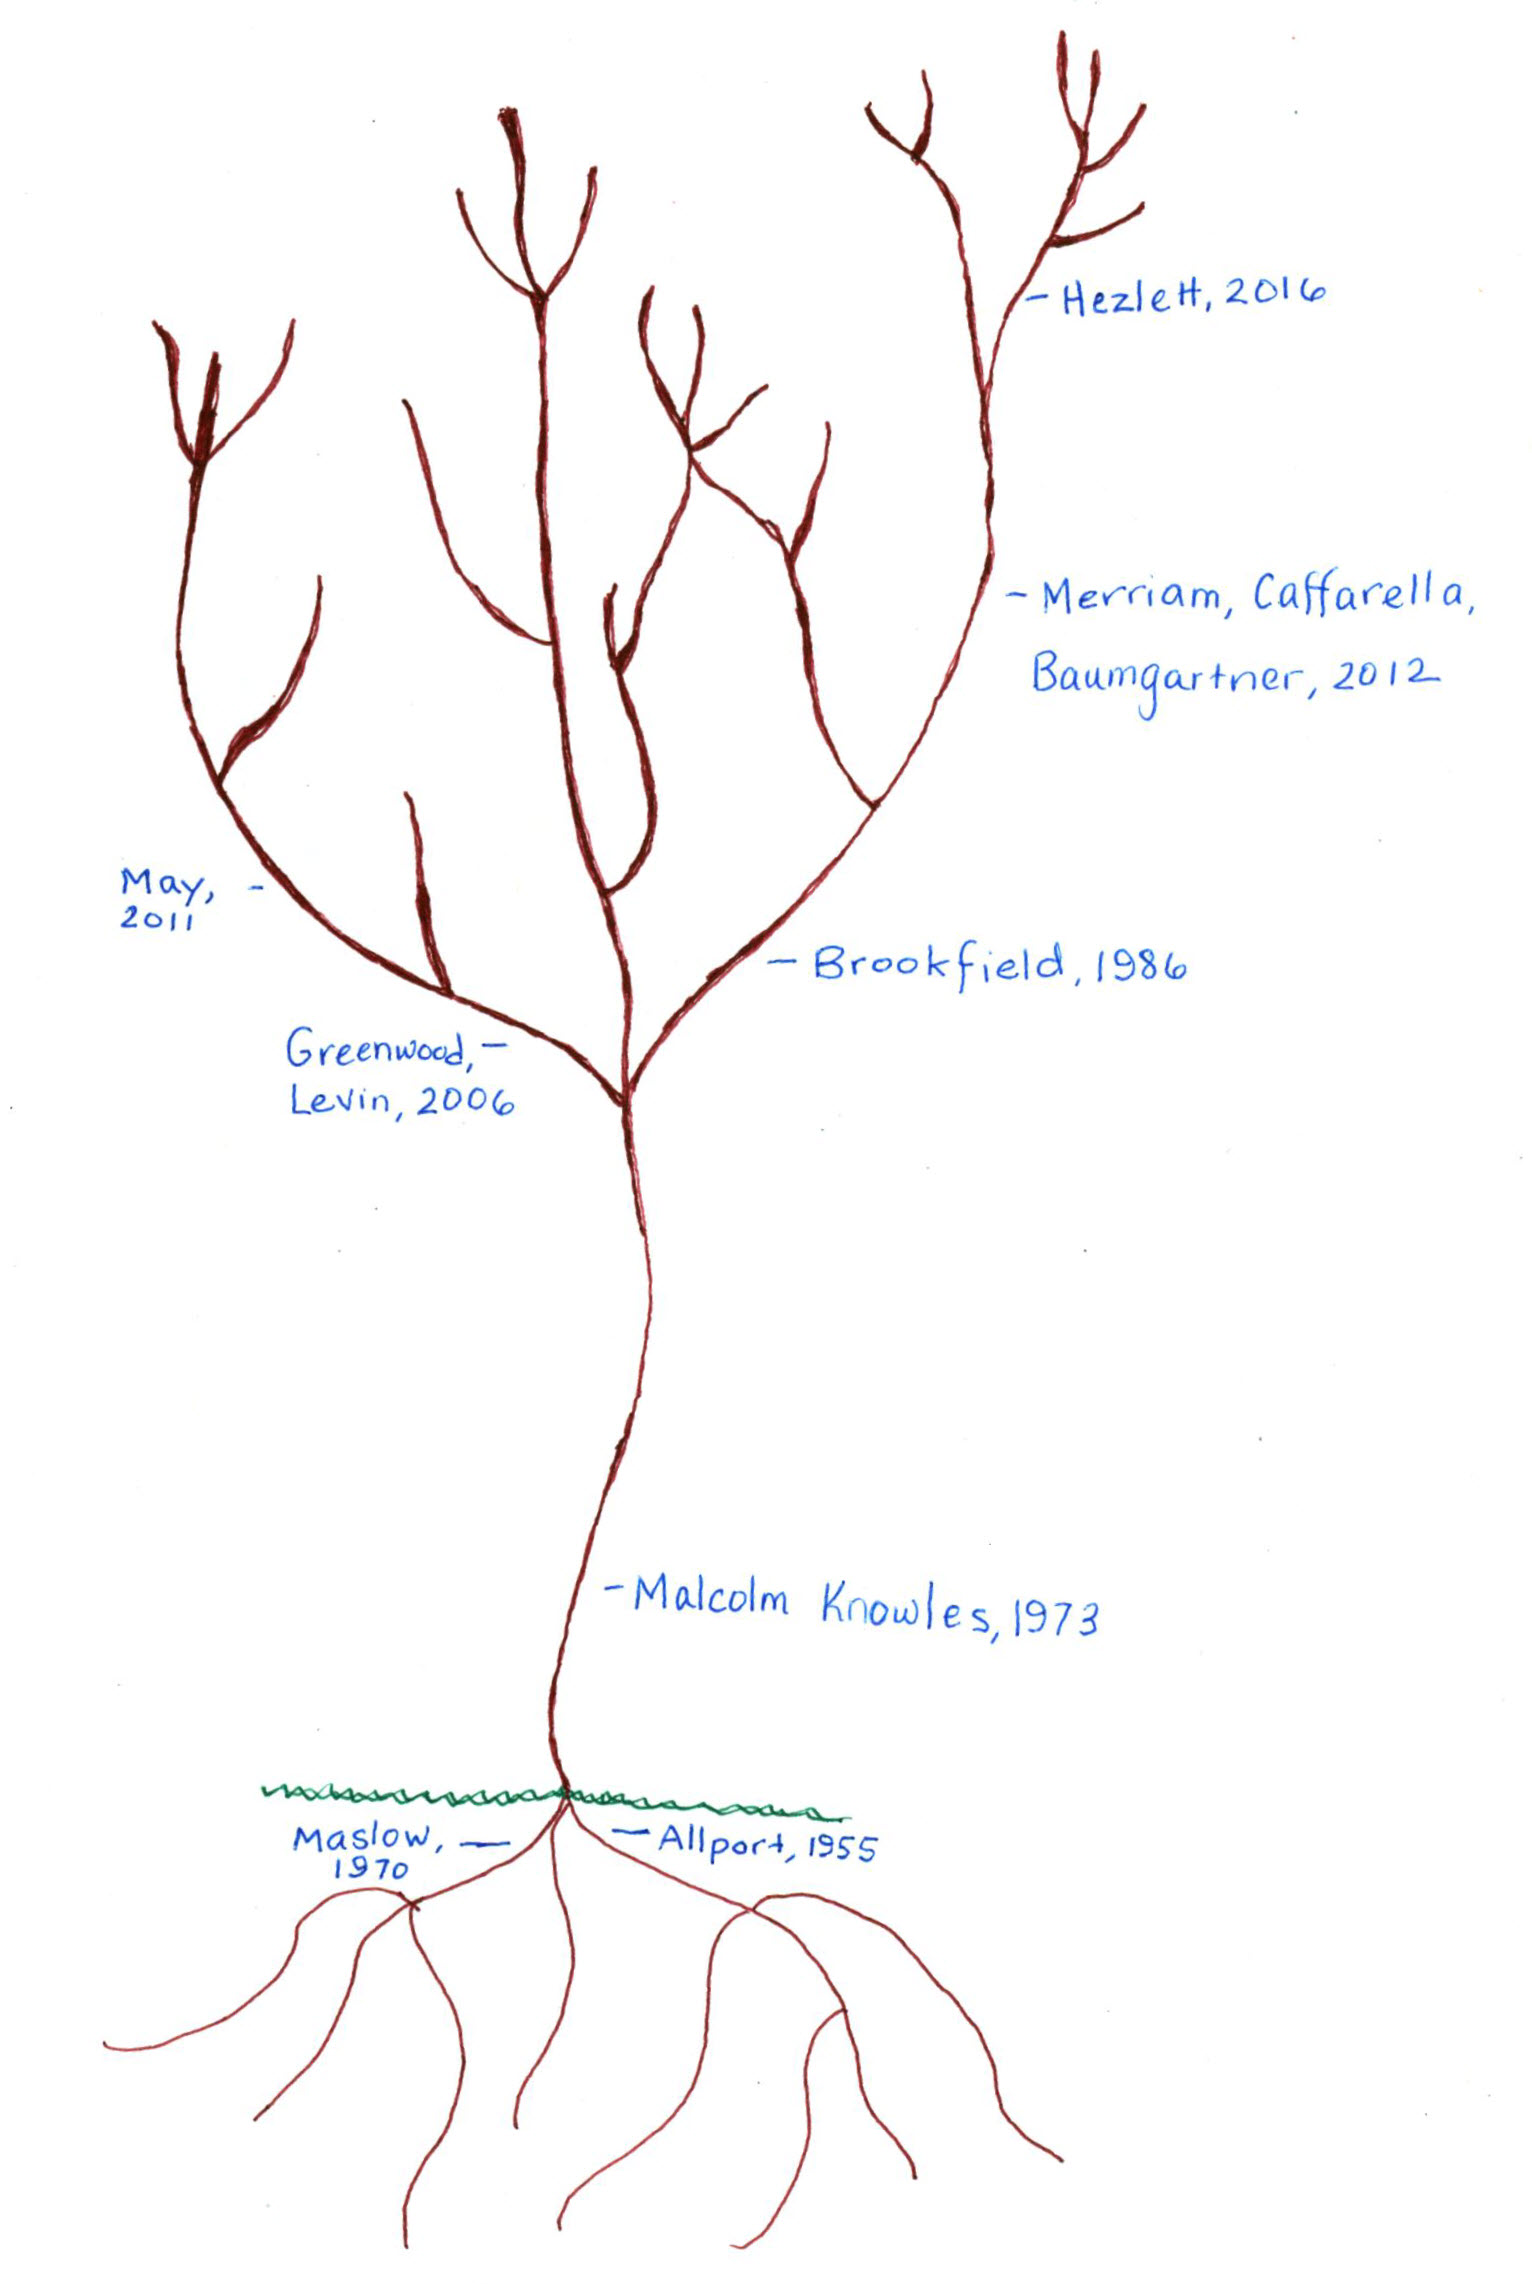 Drawing of  tree, signifies scholarly conversation